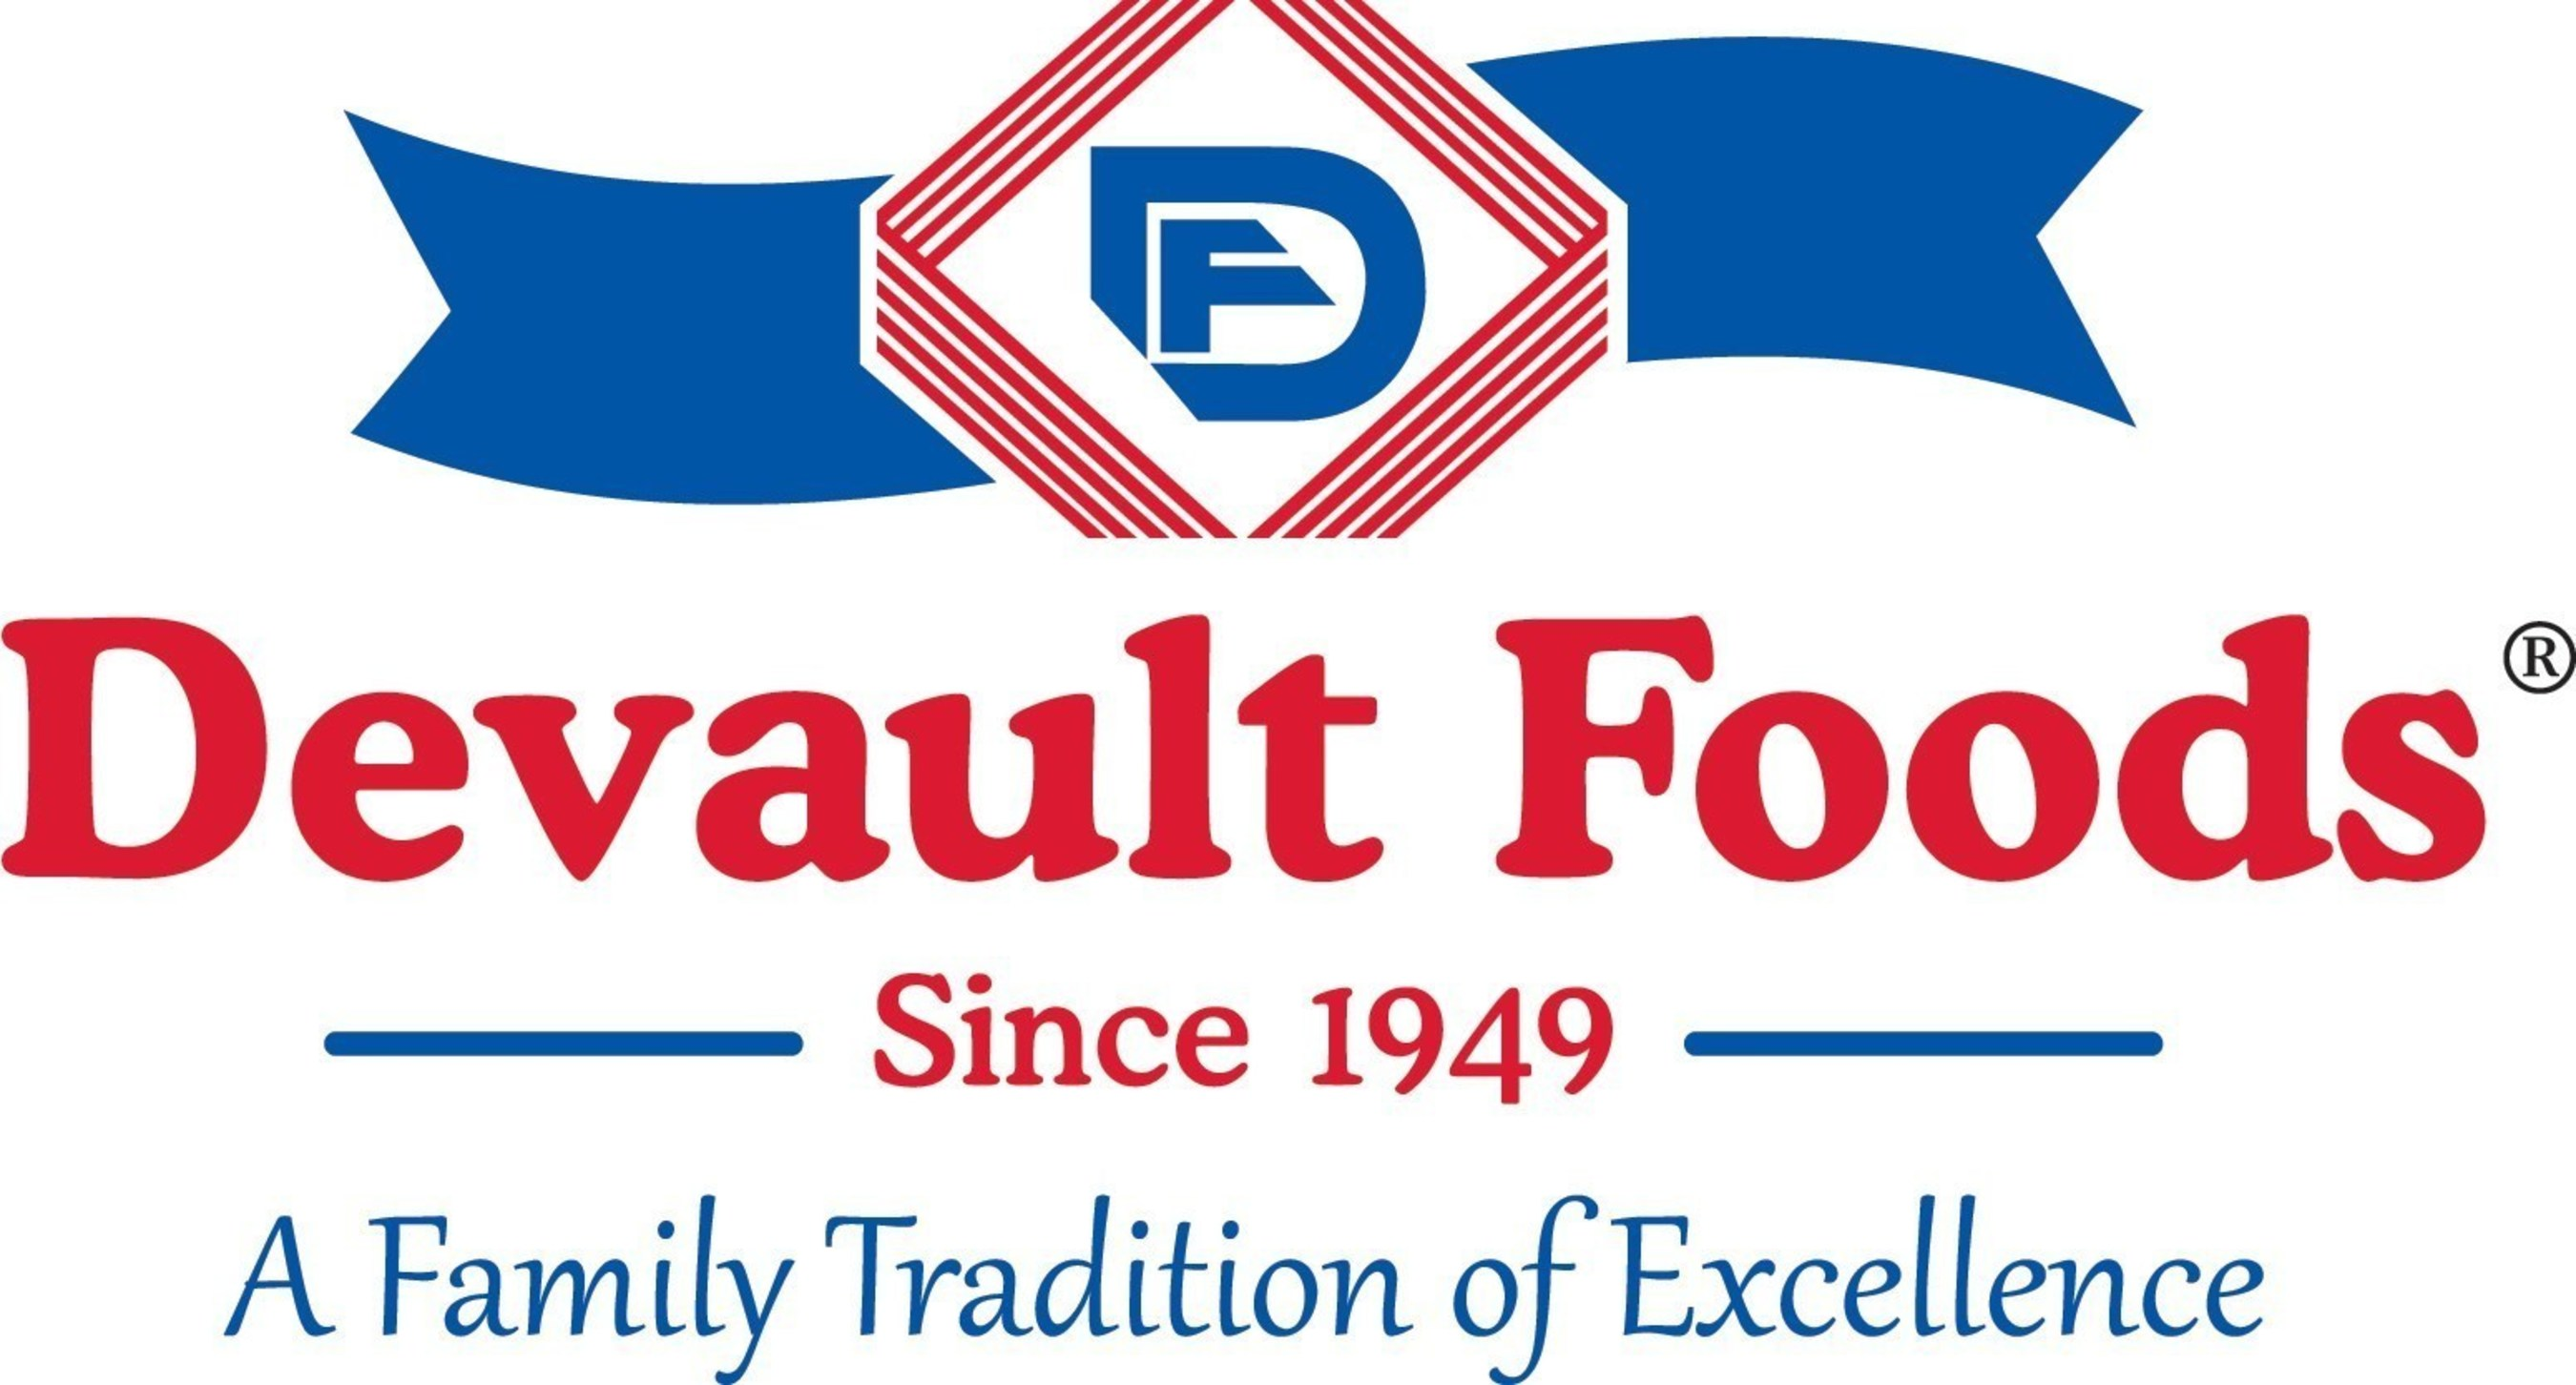 A Family Tradition of Excellence Since 1949.